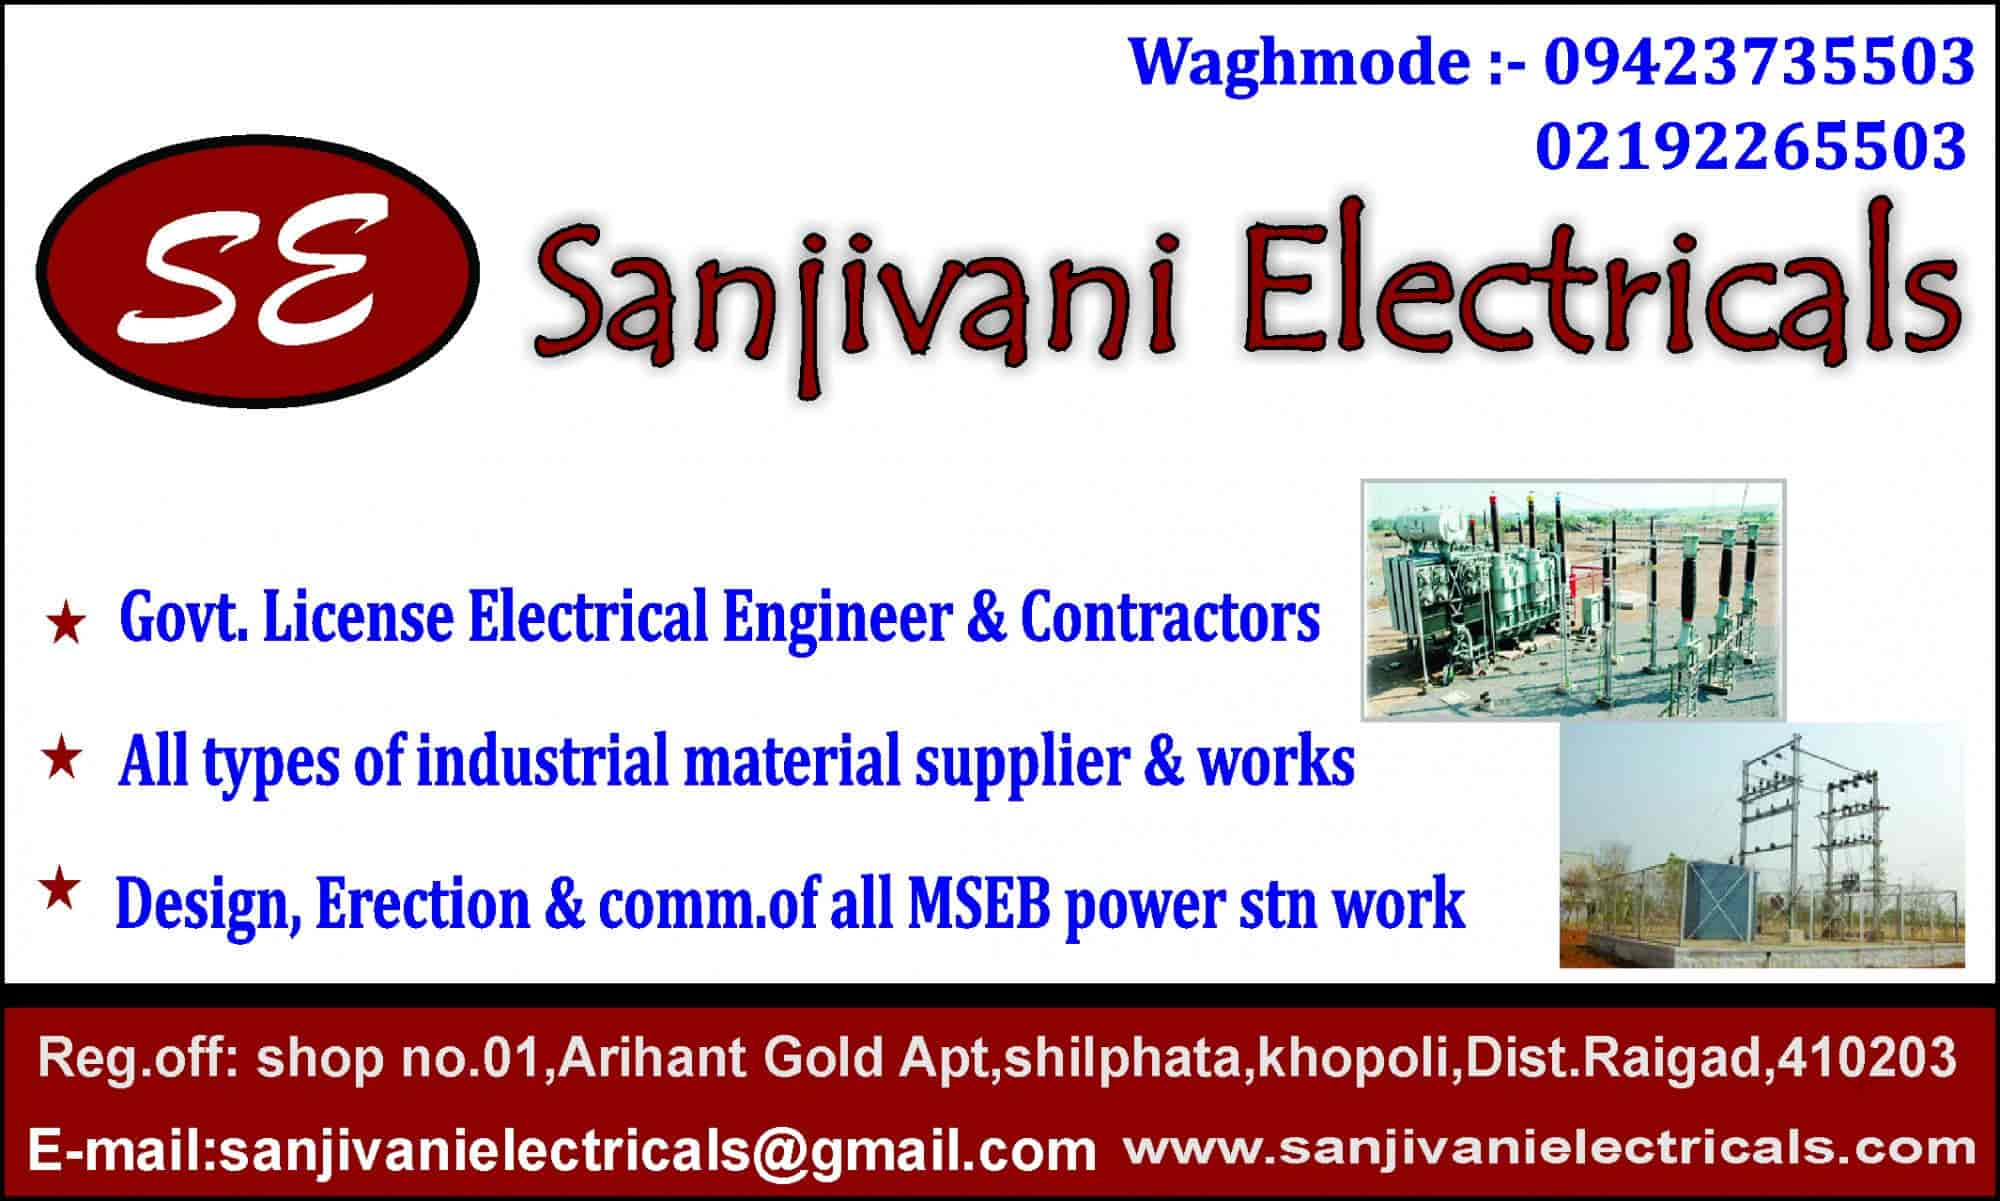 Electrical work business cards templates electrical work visiting work business card template sanjeevani electricals photos khopoli mumbai pictures images reheart Choice Image